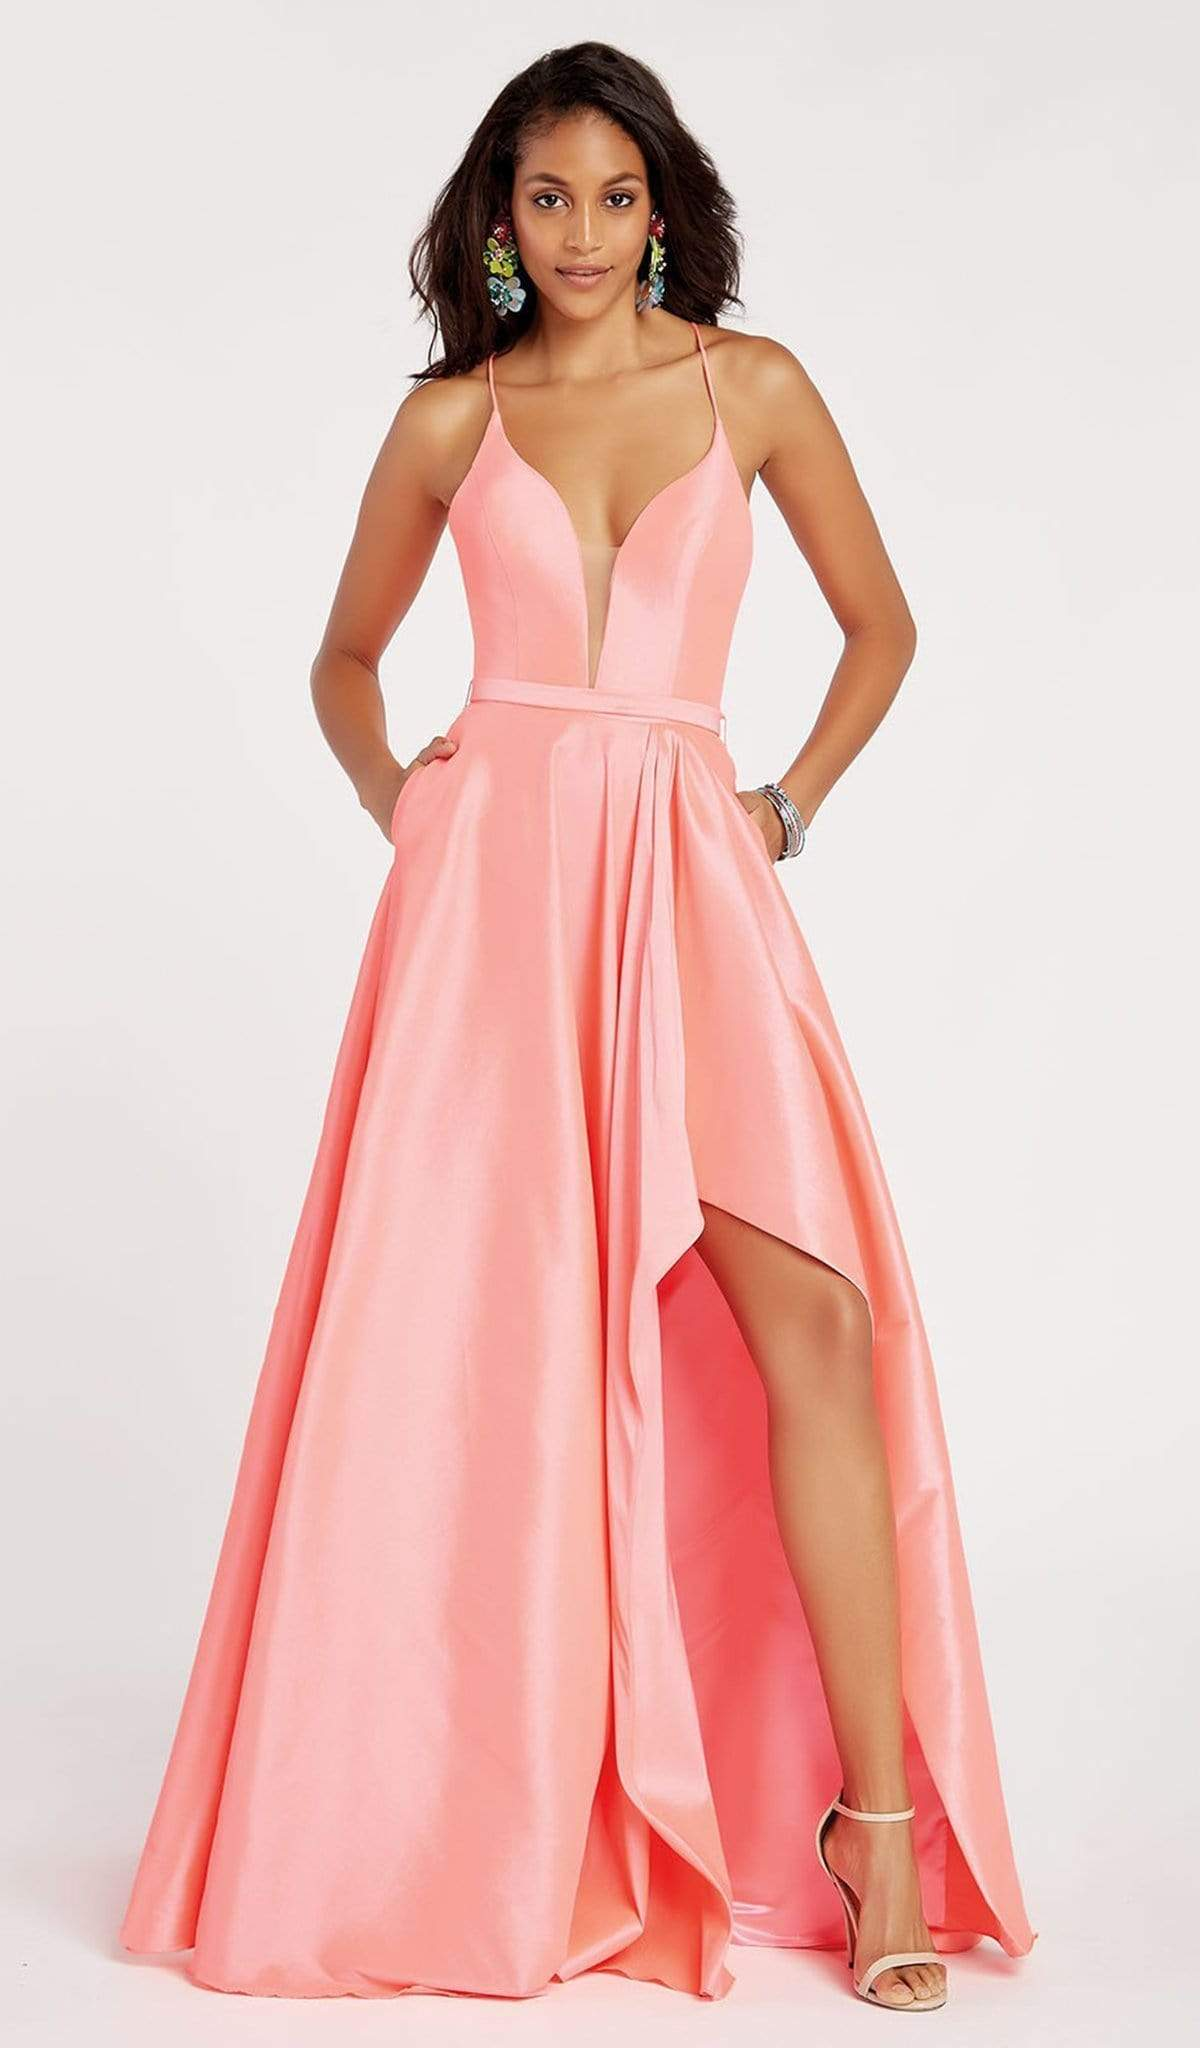 Alyce Paris - 60394 Illusion Plunging Neck High-Low Taffeta Prom Dress Special Occasion Dress 00 / New Coral